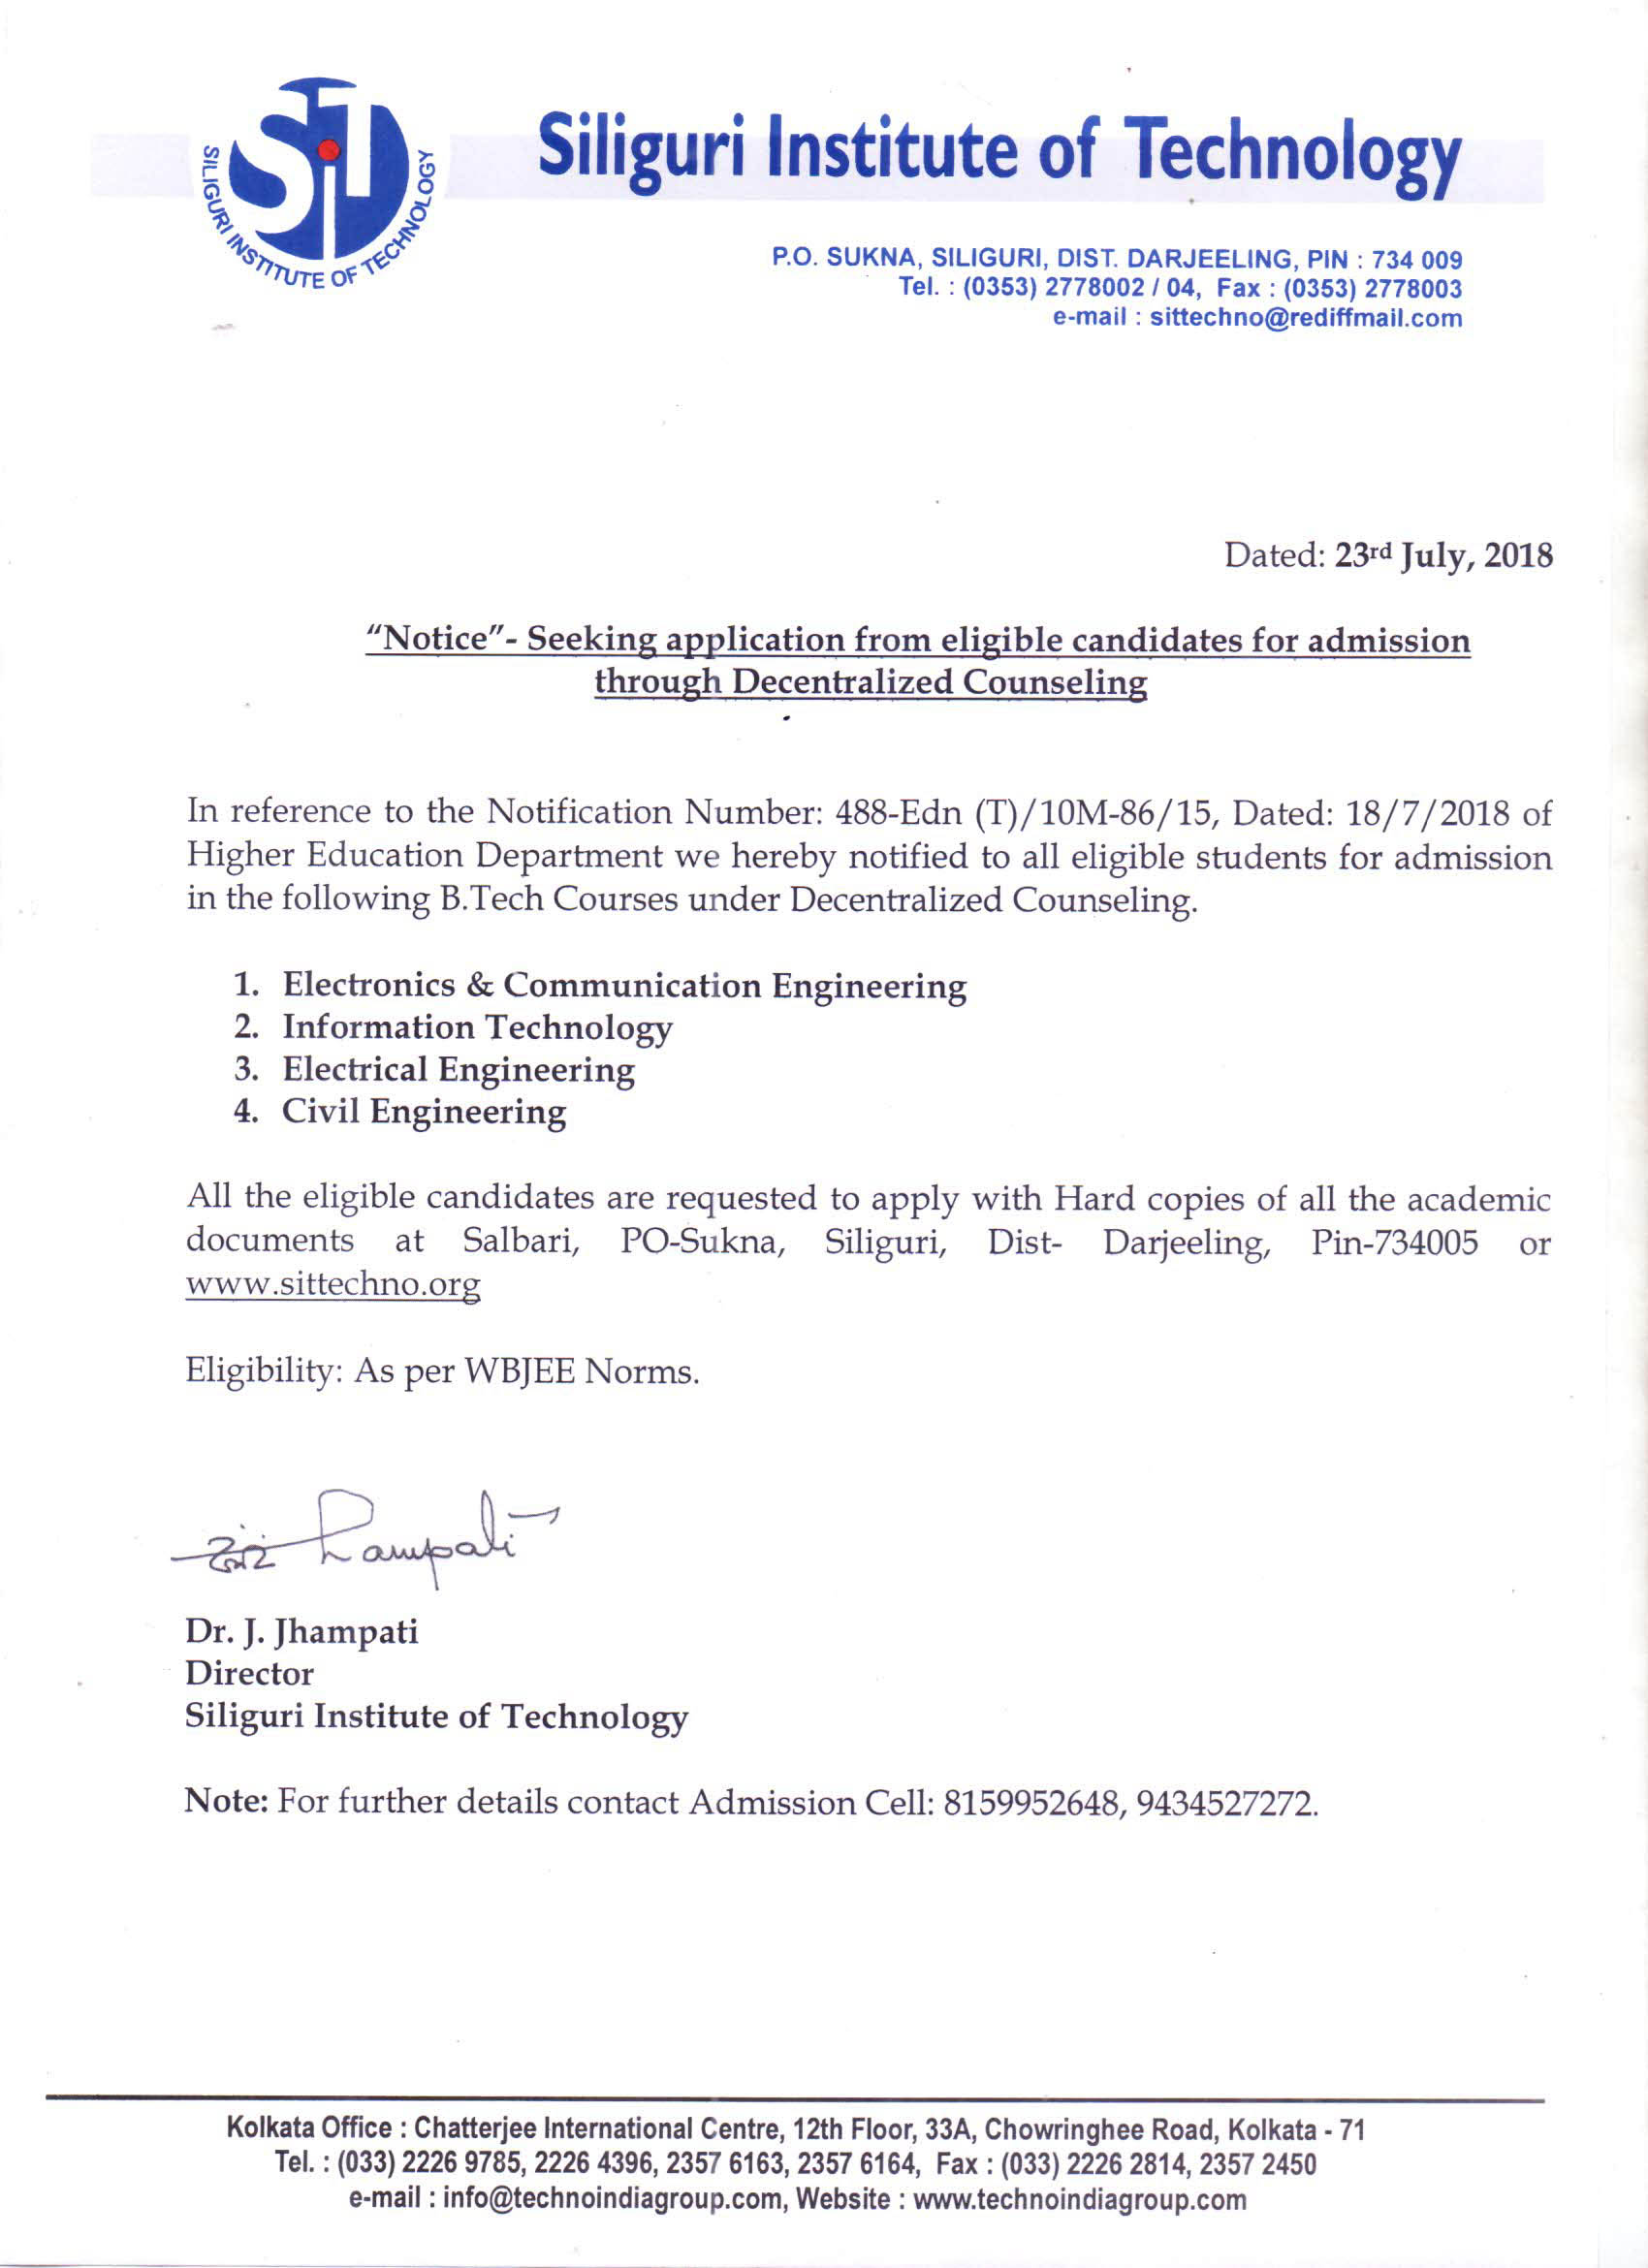 Notice- Seeking application from eligible candidates for admission through Decentralized Councelling